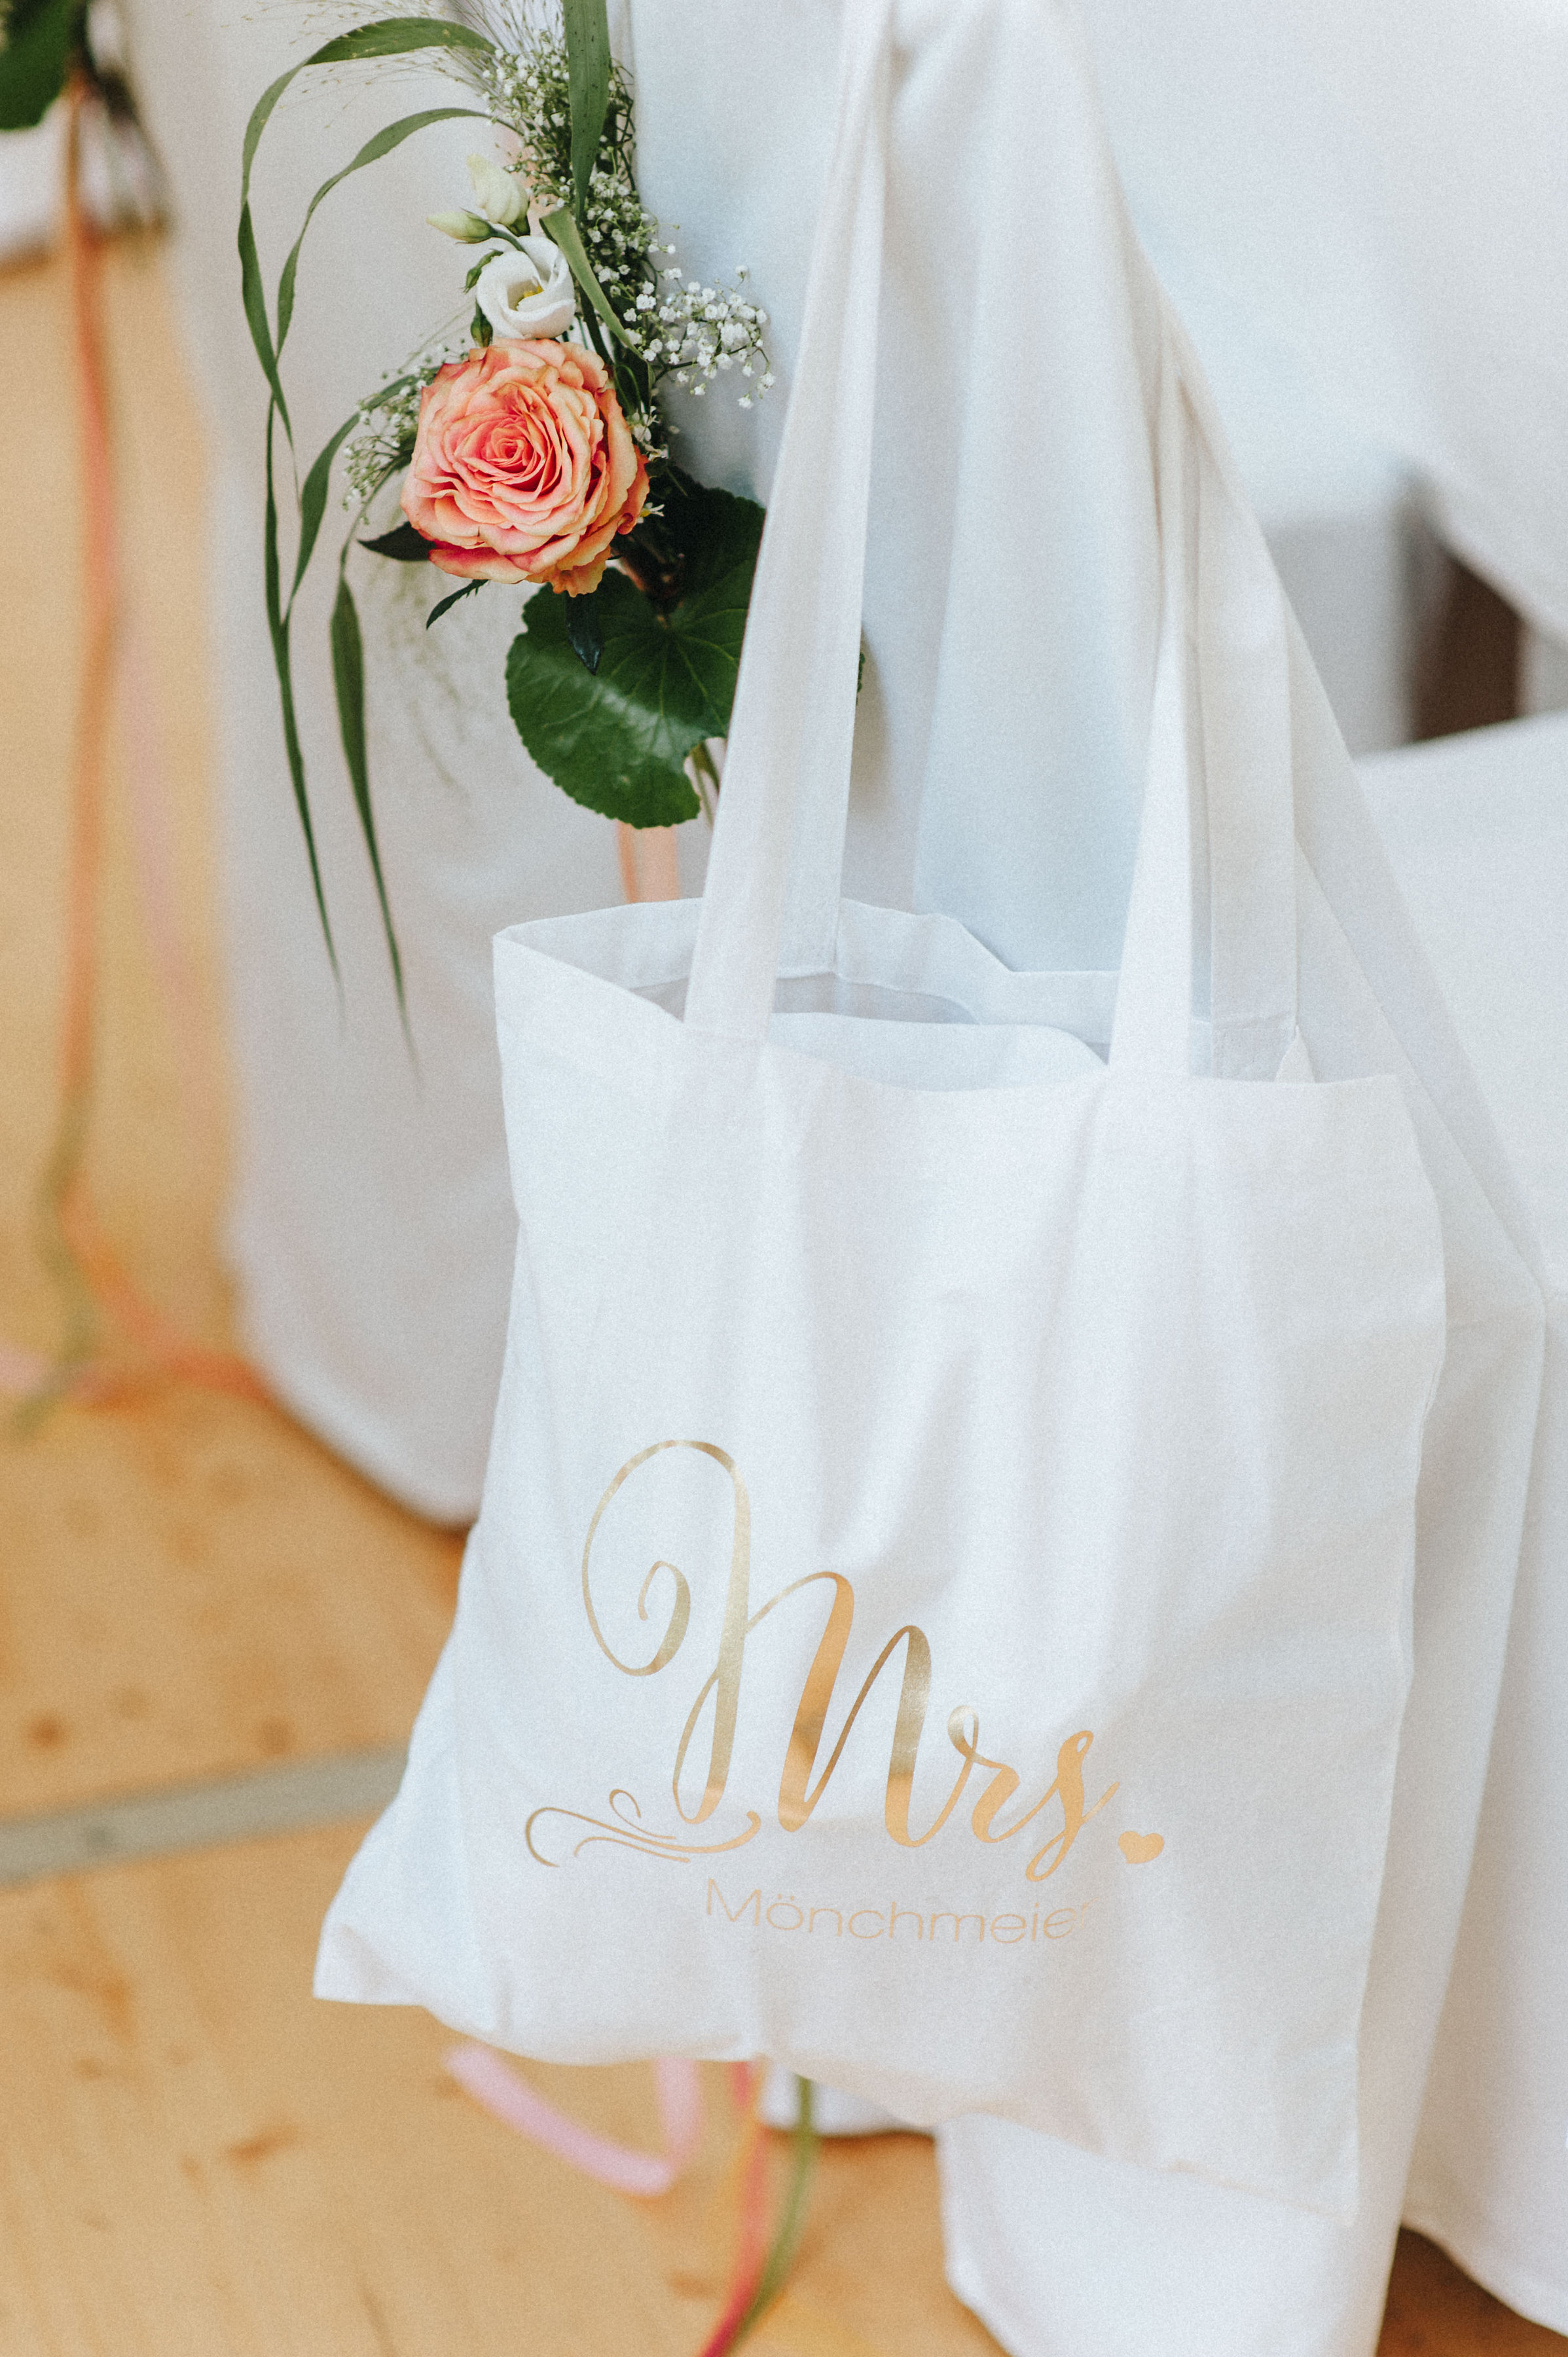 wedding bag Brauttasche Jutebeutel Braut individuelle Brauttasche Design: monsieurmuffin Bestellungen via monsieurmuffin Foto: kreativwedding